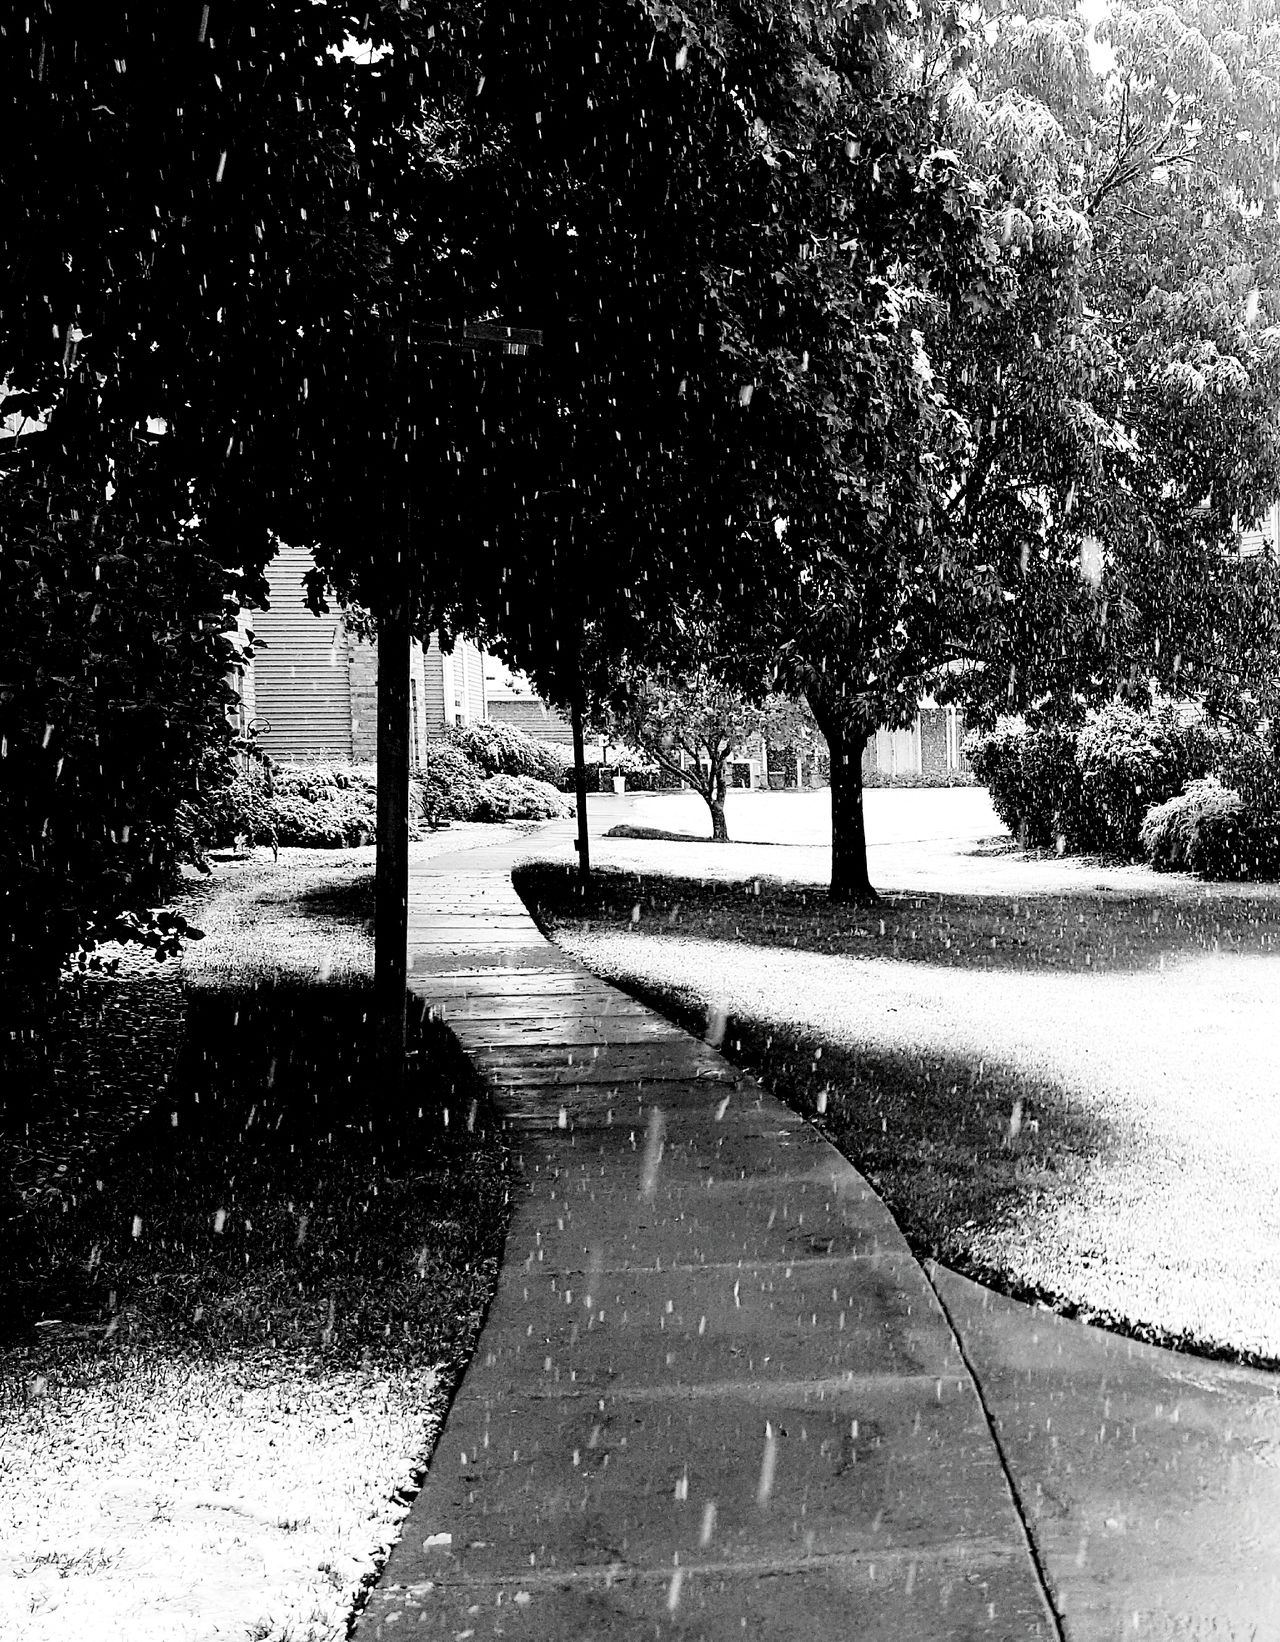 Snowy Sidewalk in . . . May? Outdoors Tranquil Scene Snowscape Snowy Trees Snow Day Snowy Morning Snowy Walk Sidewalk Sidewalk Photography Sidewalk In A Snowy Spring Snowy Spring